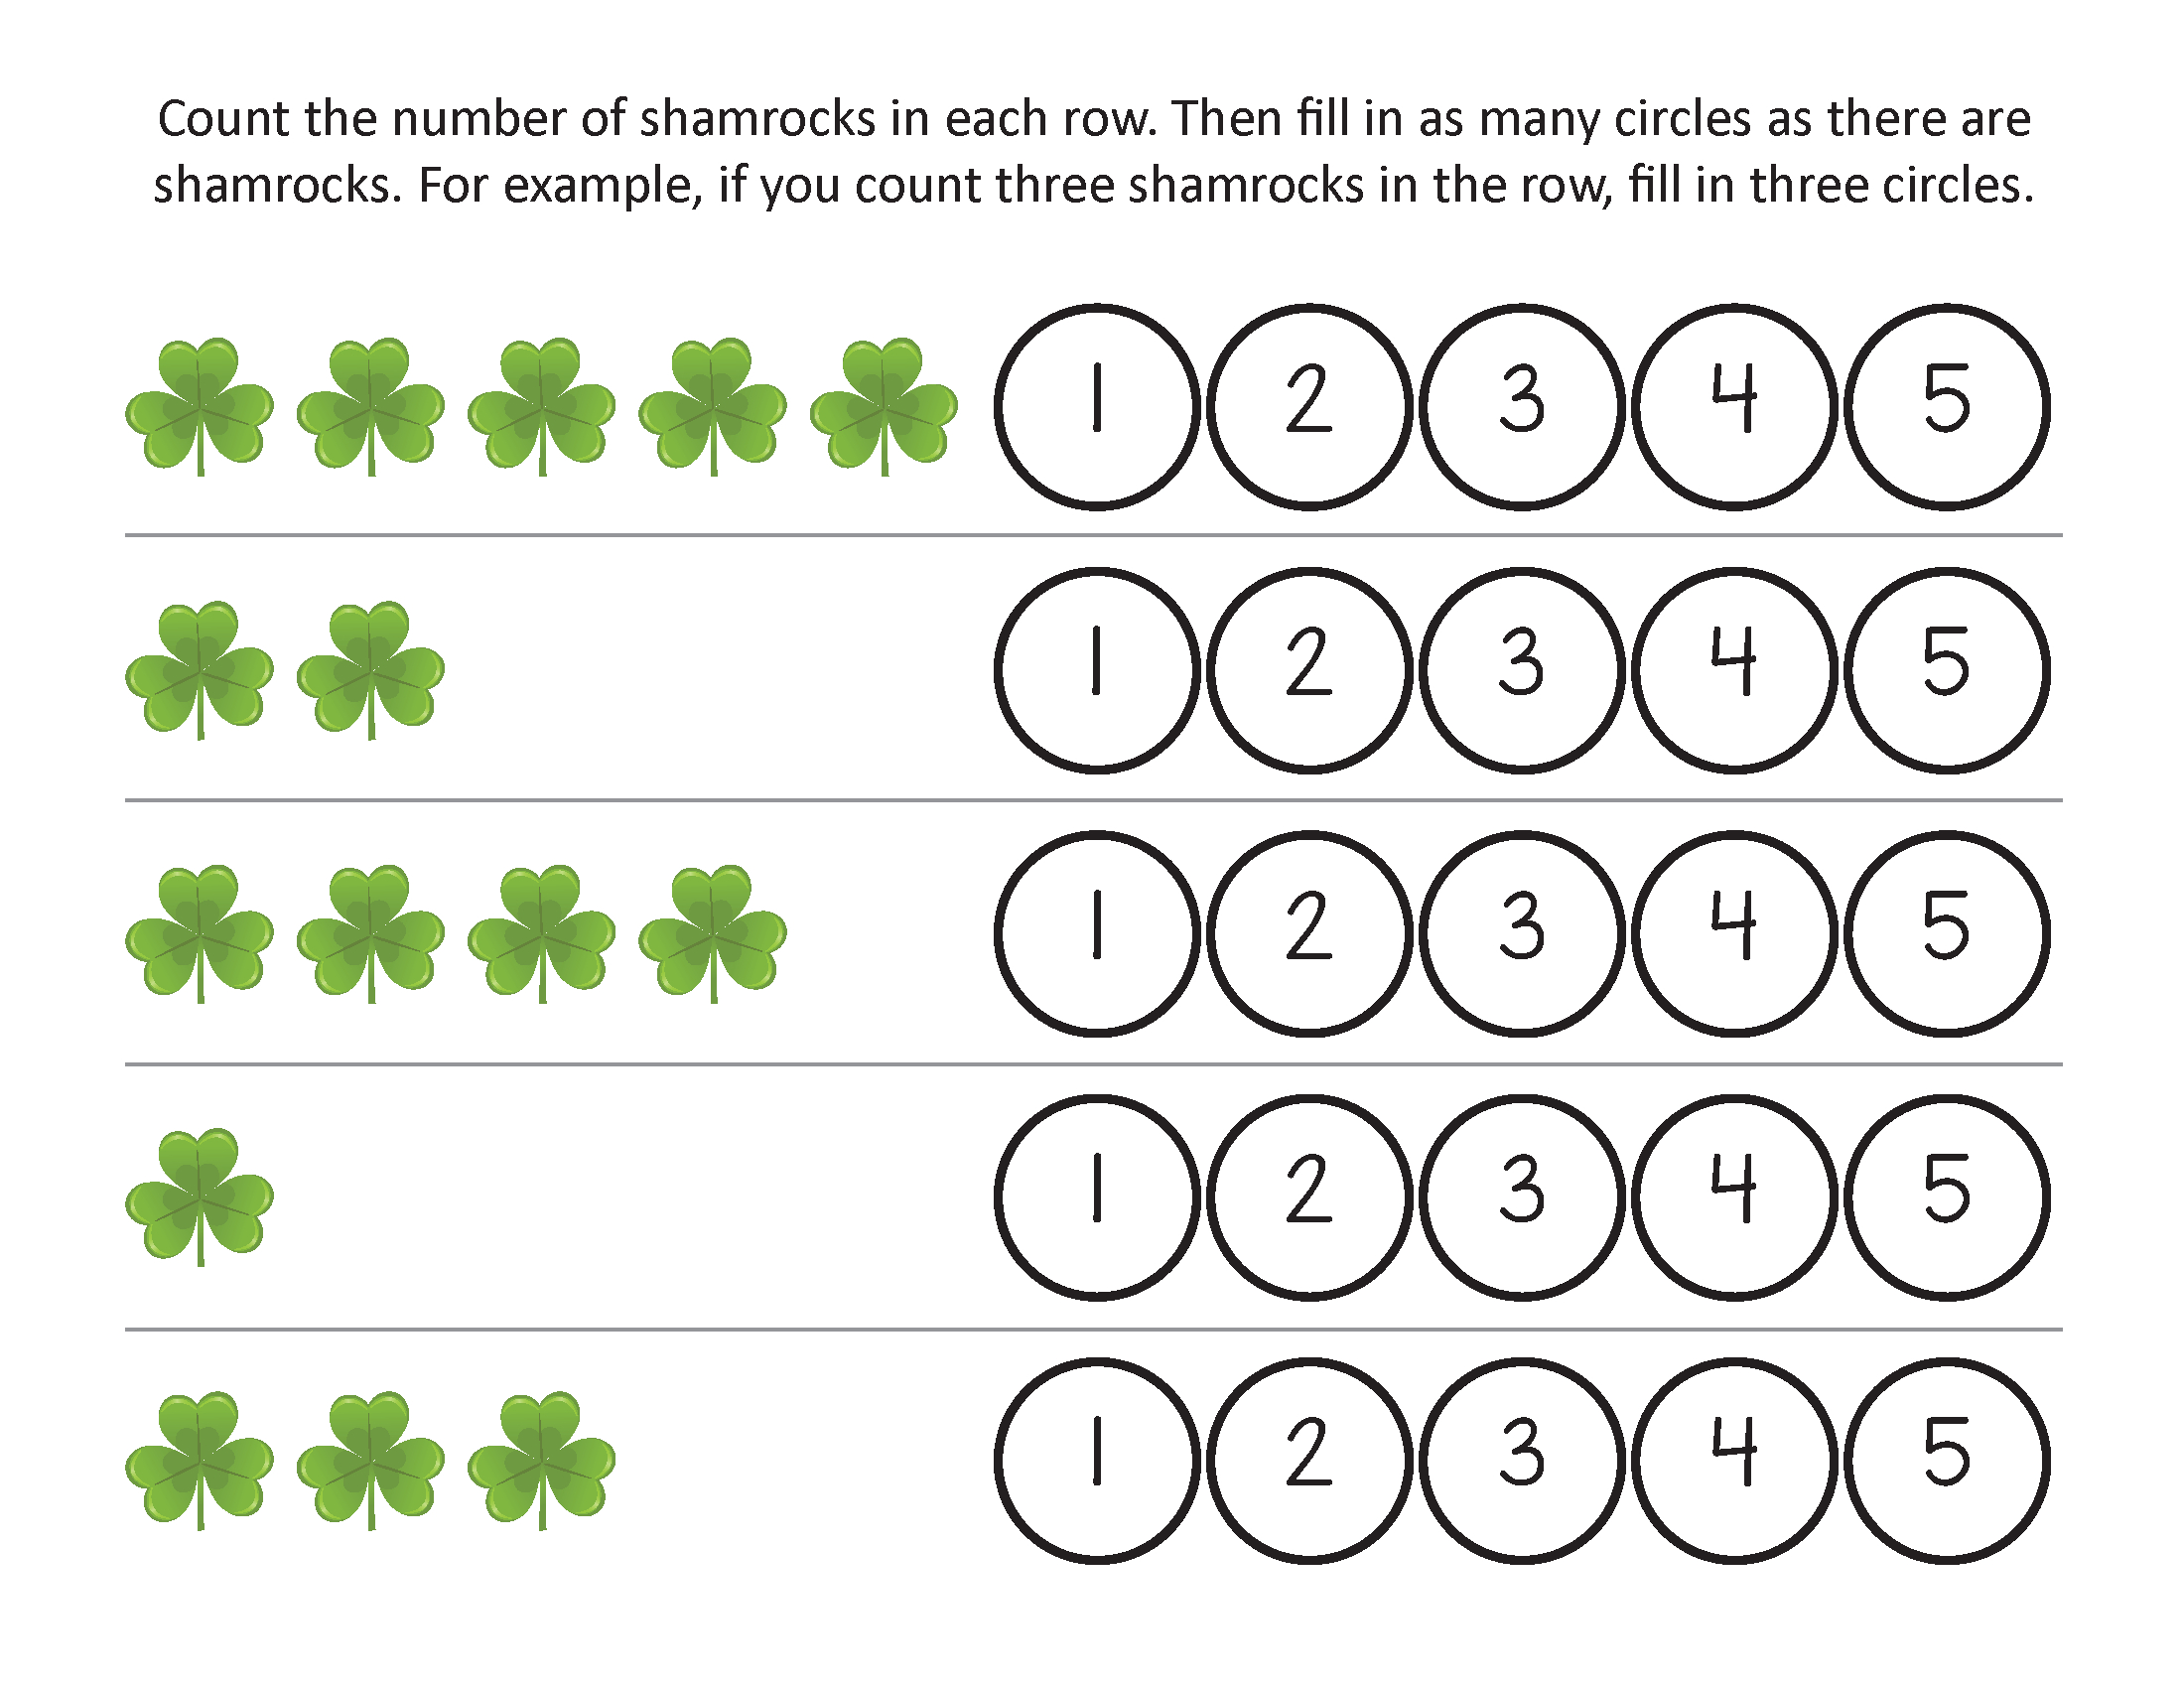 St Patricks Day Worksheets - Best Coloring Pages For Kids - Free Printable St Patrick Day Worksheets